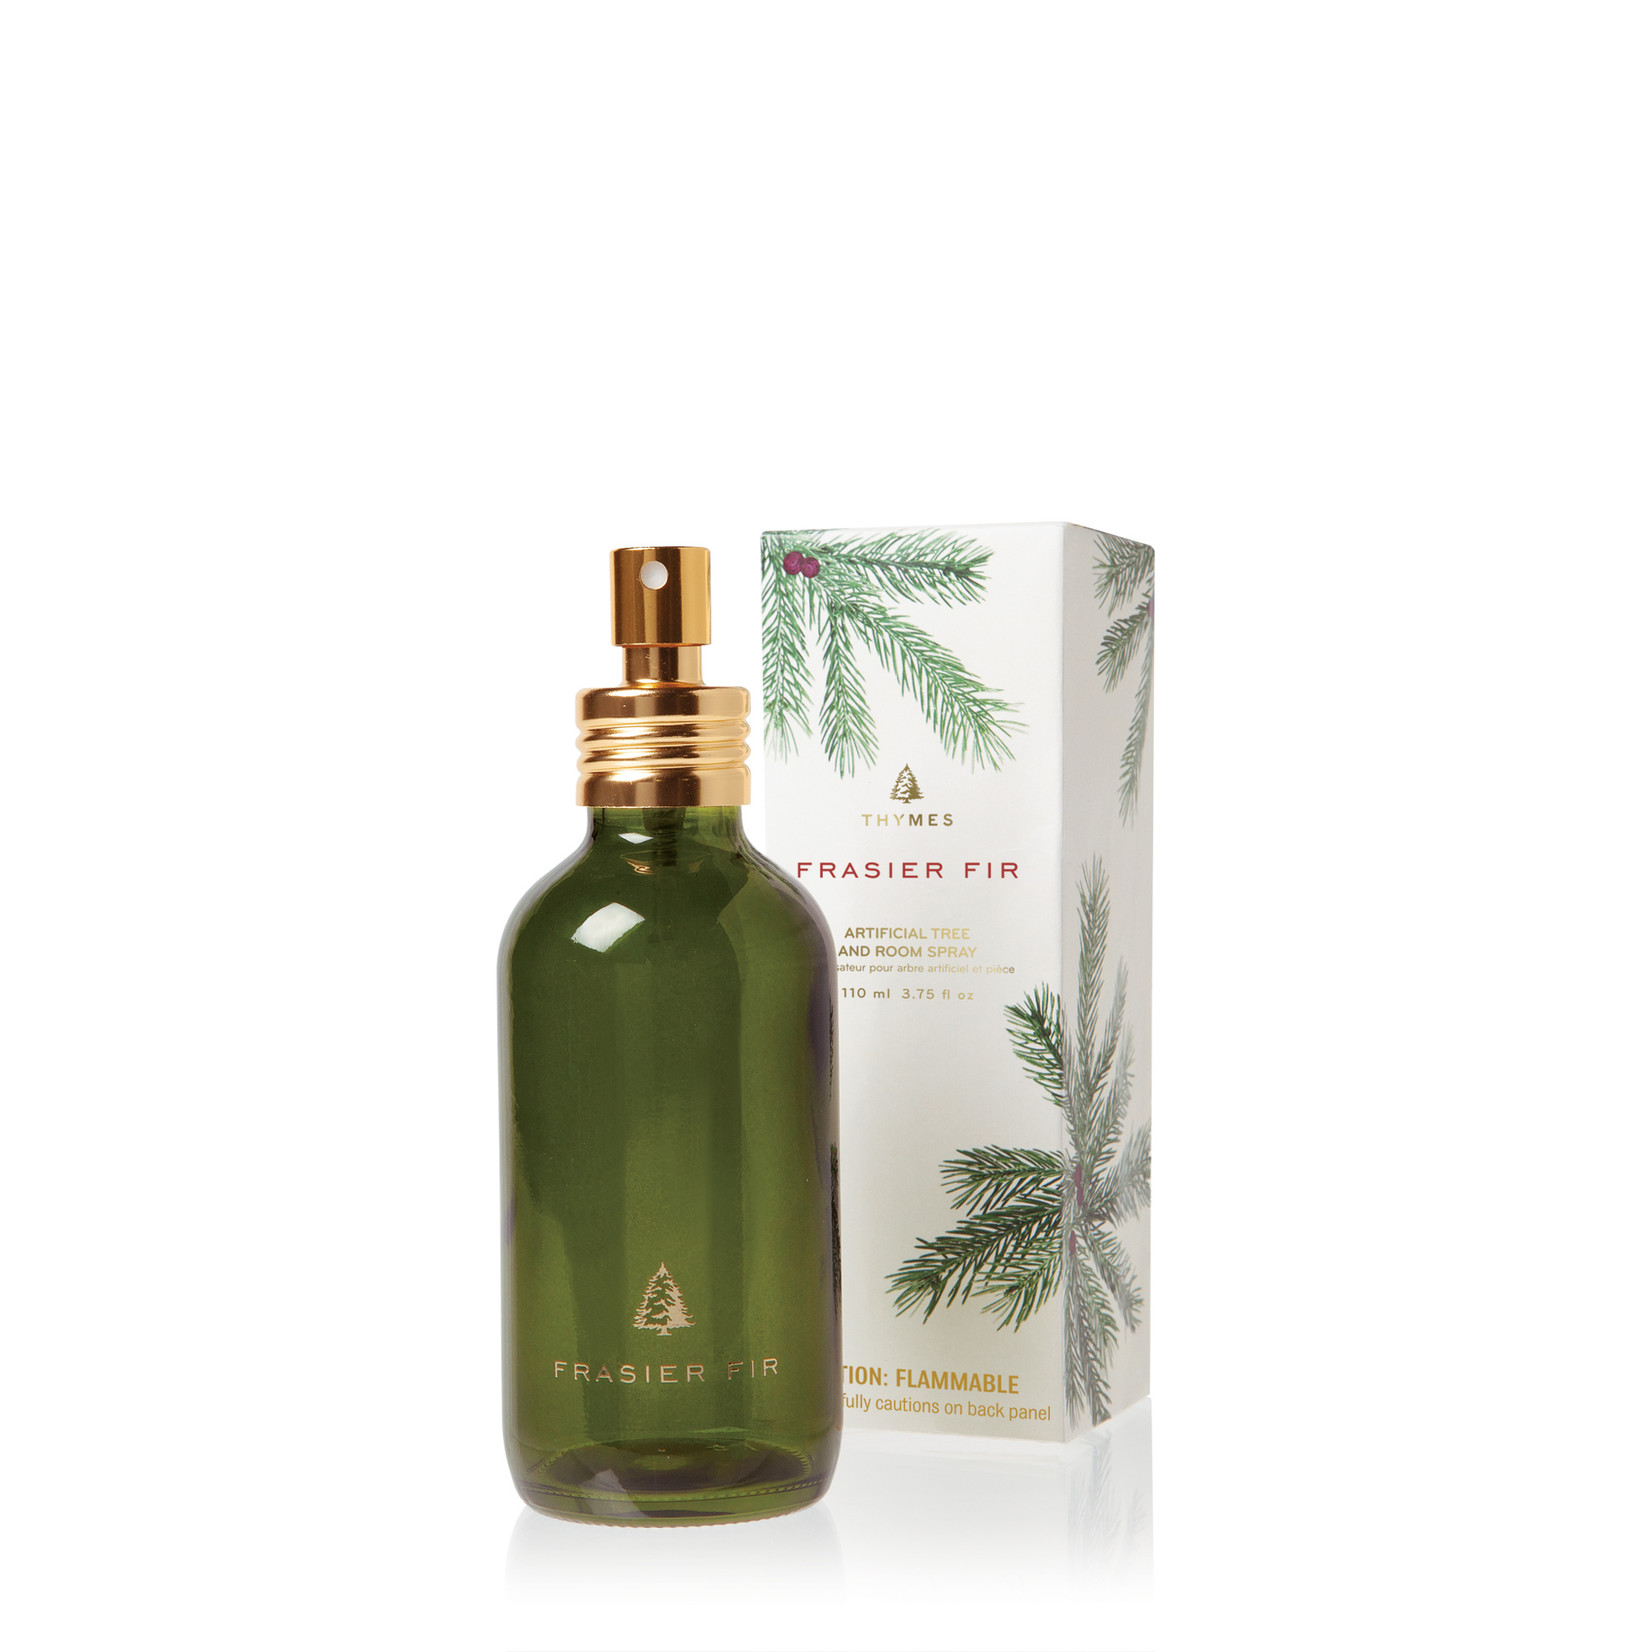 Thymes Frasier Fir Artificial Tree and Room Spray